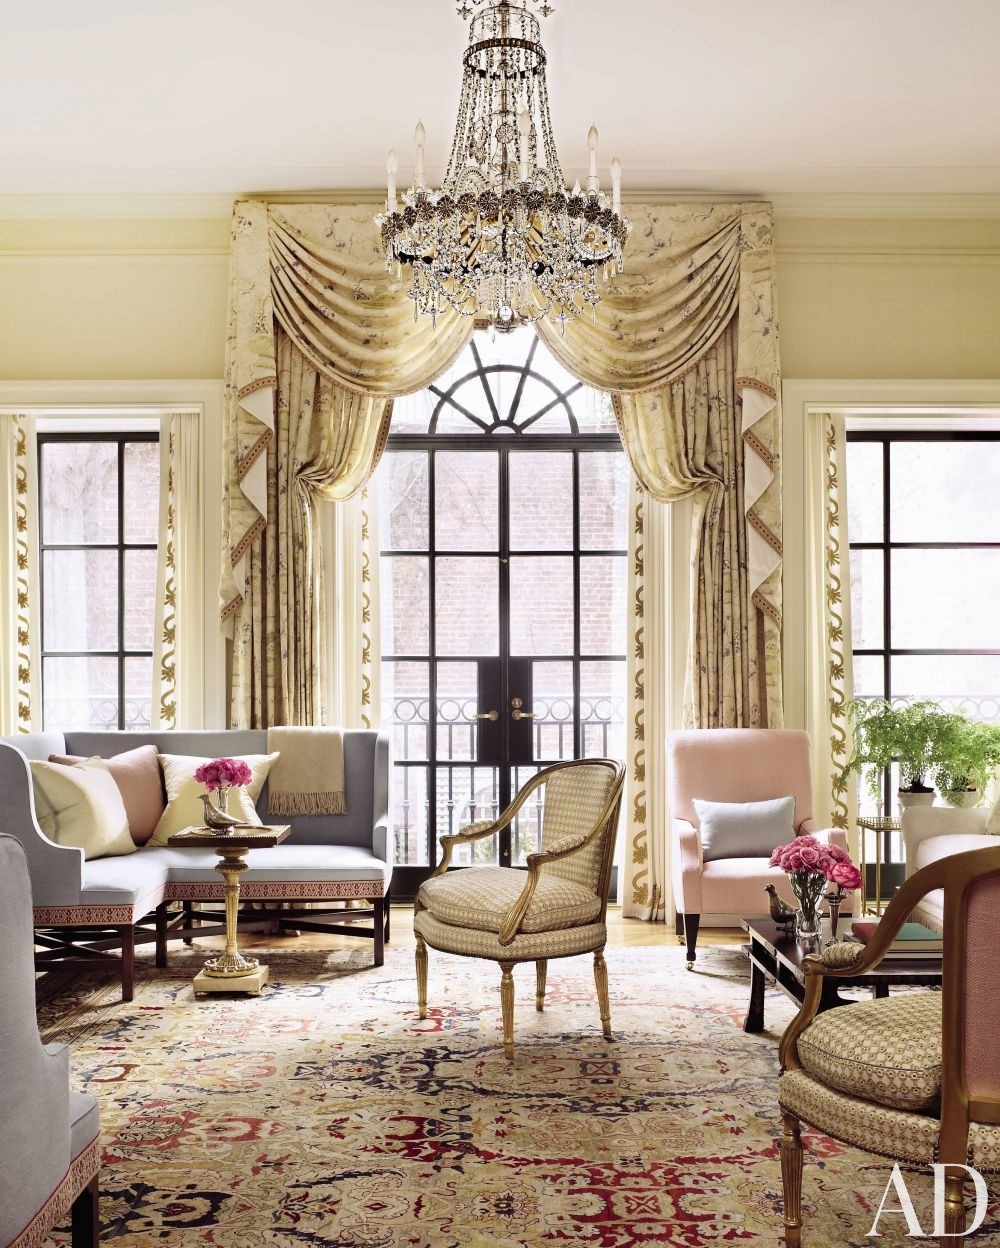 traditional-living-room-peter-pennoyer-architects-new-york-city-201104-3_1000-watermarked